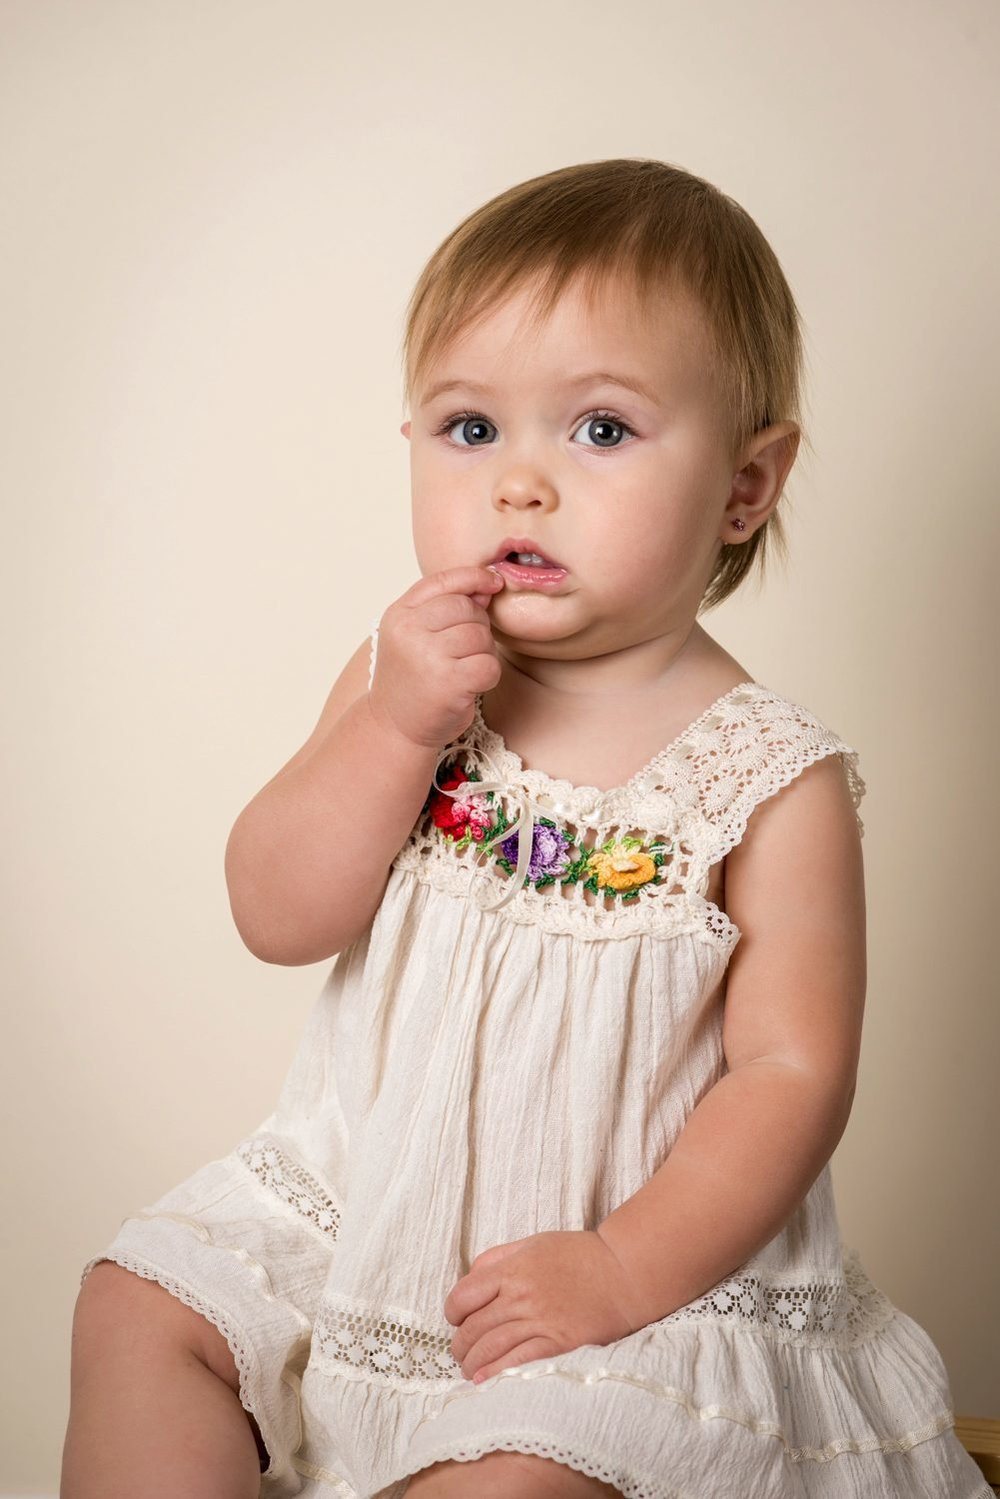 little girl grabbing lip wearing vintage dress on cream